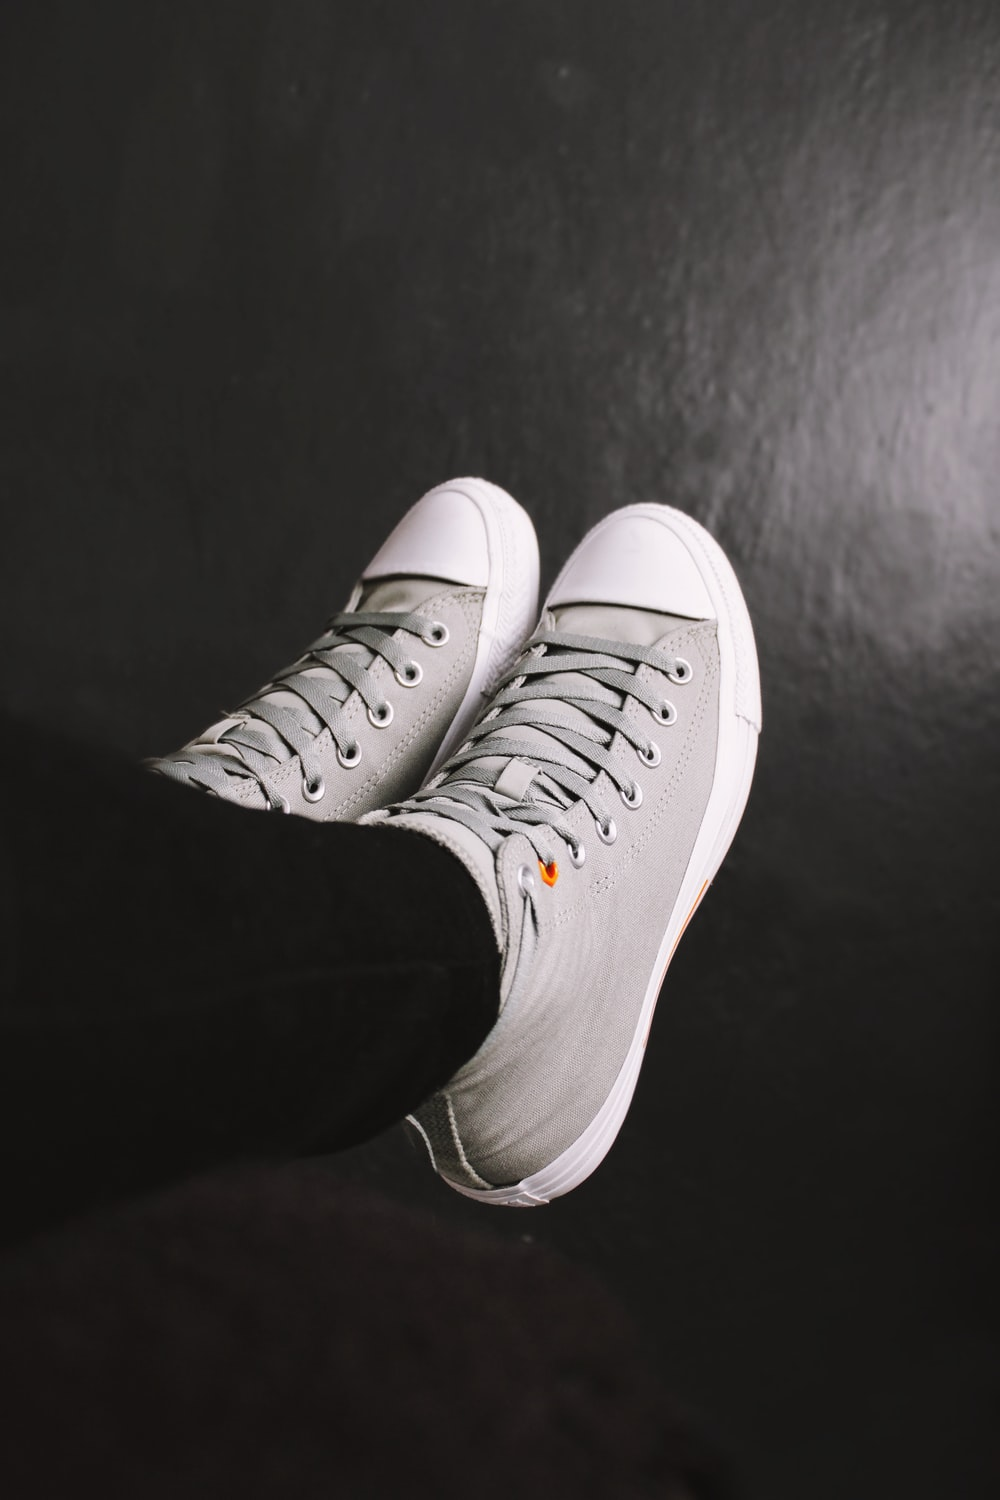 person wearing white nike sneakers